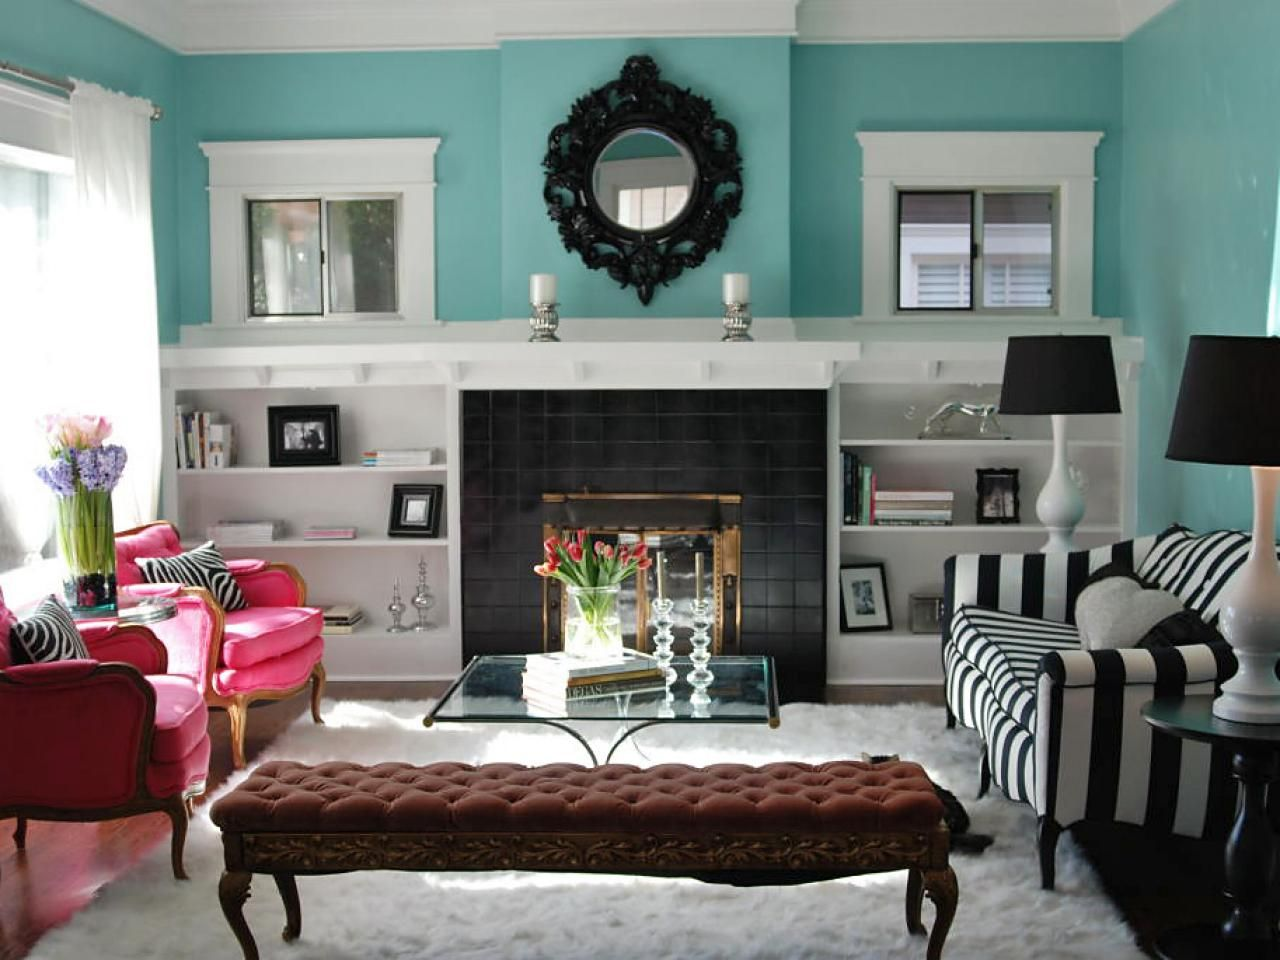 How To Build Bookshelves Around A Fireplace  Hgtv Decorating And Beauteous Design Ideas For Living Room With Fireplace Decorating Inspiration